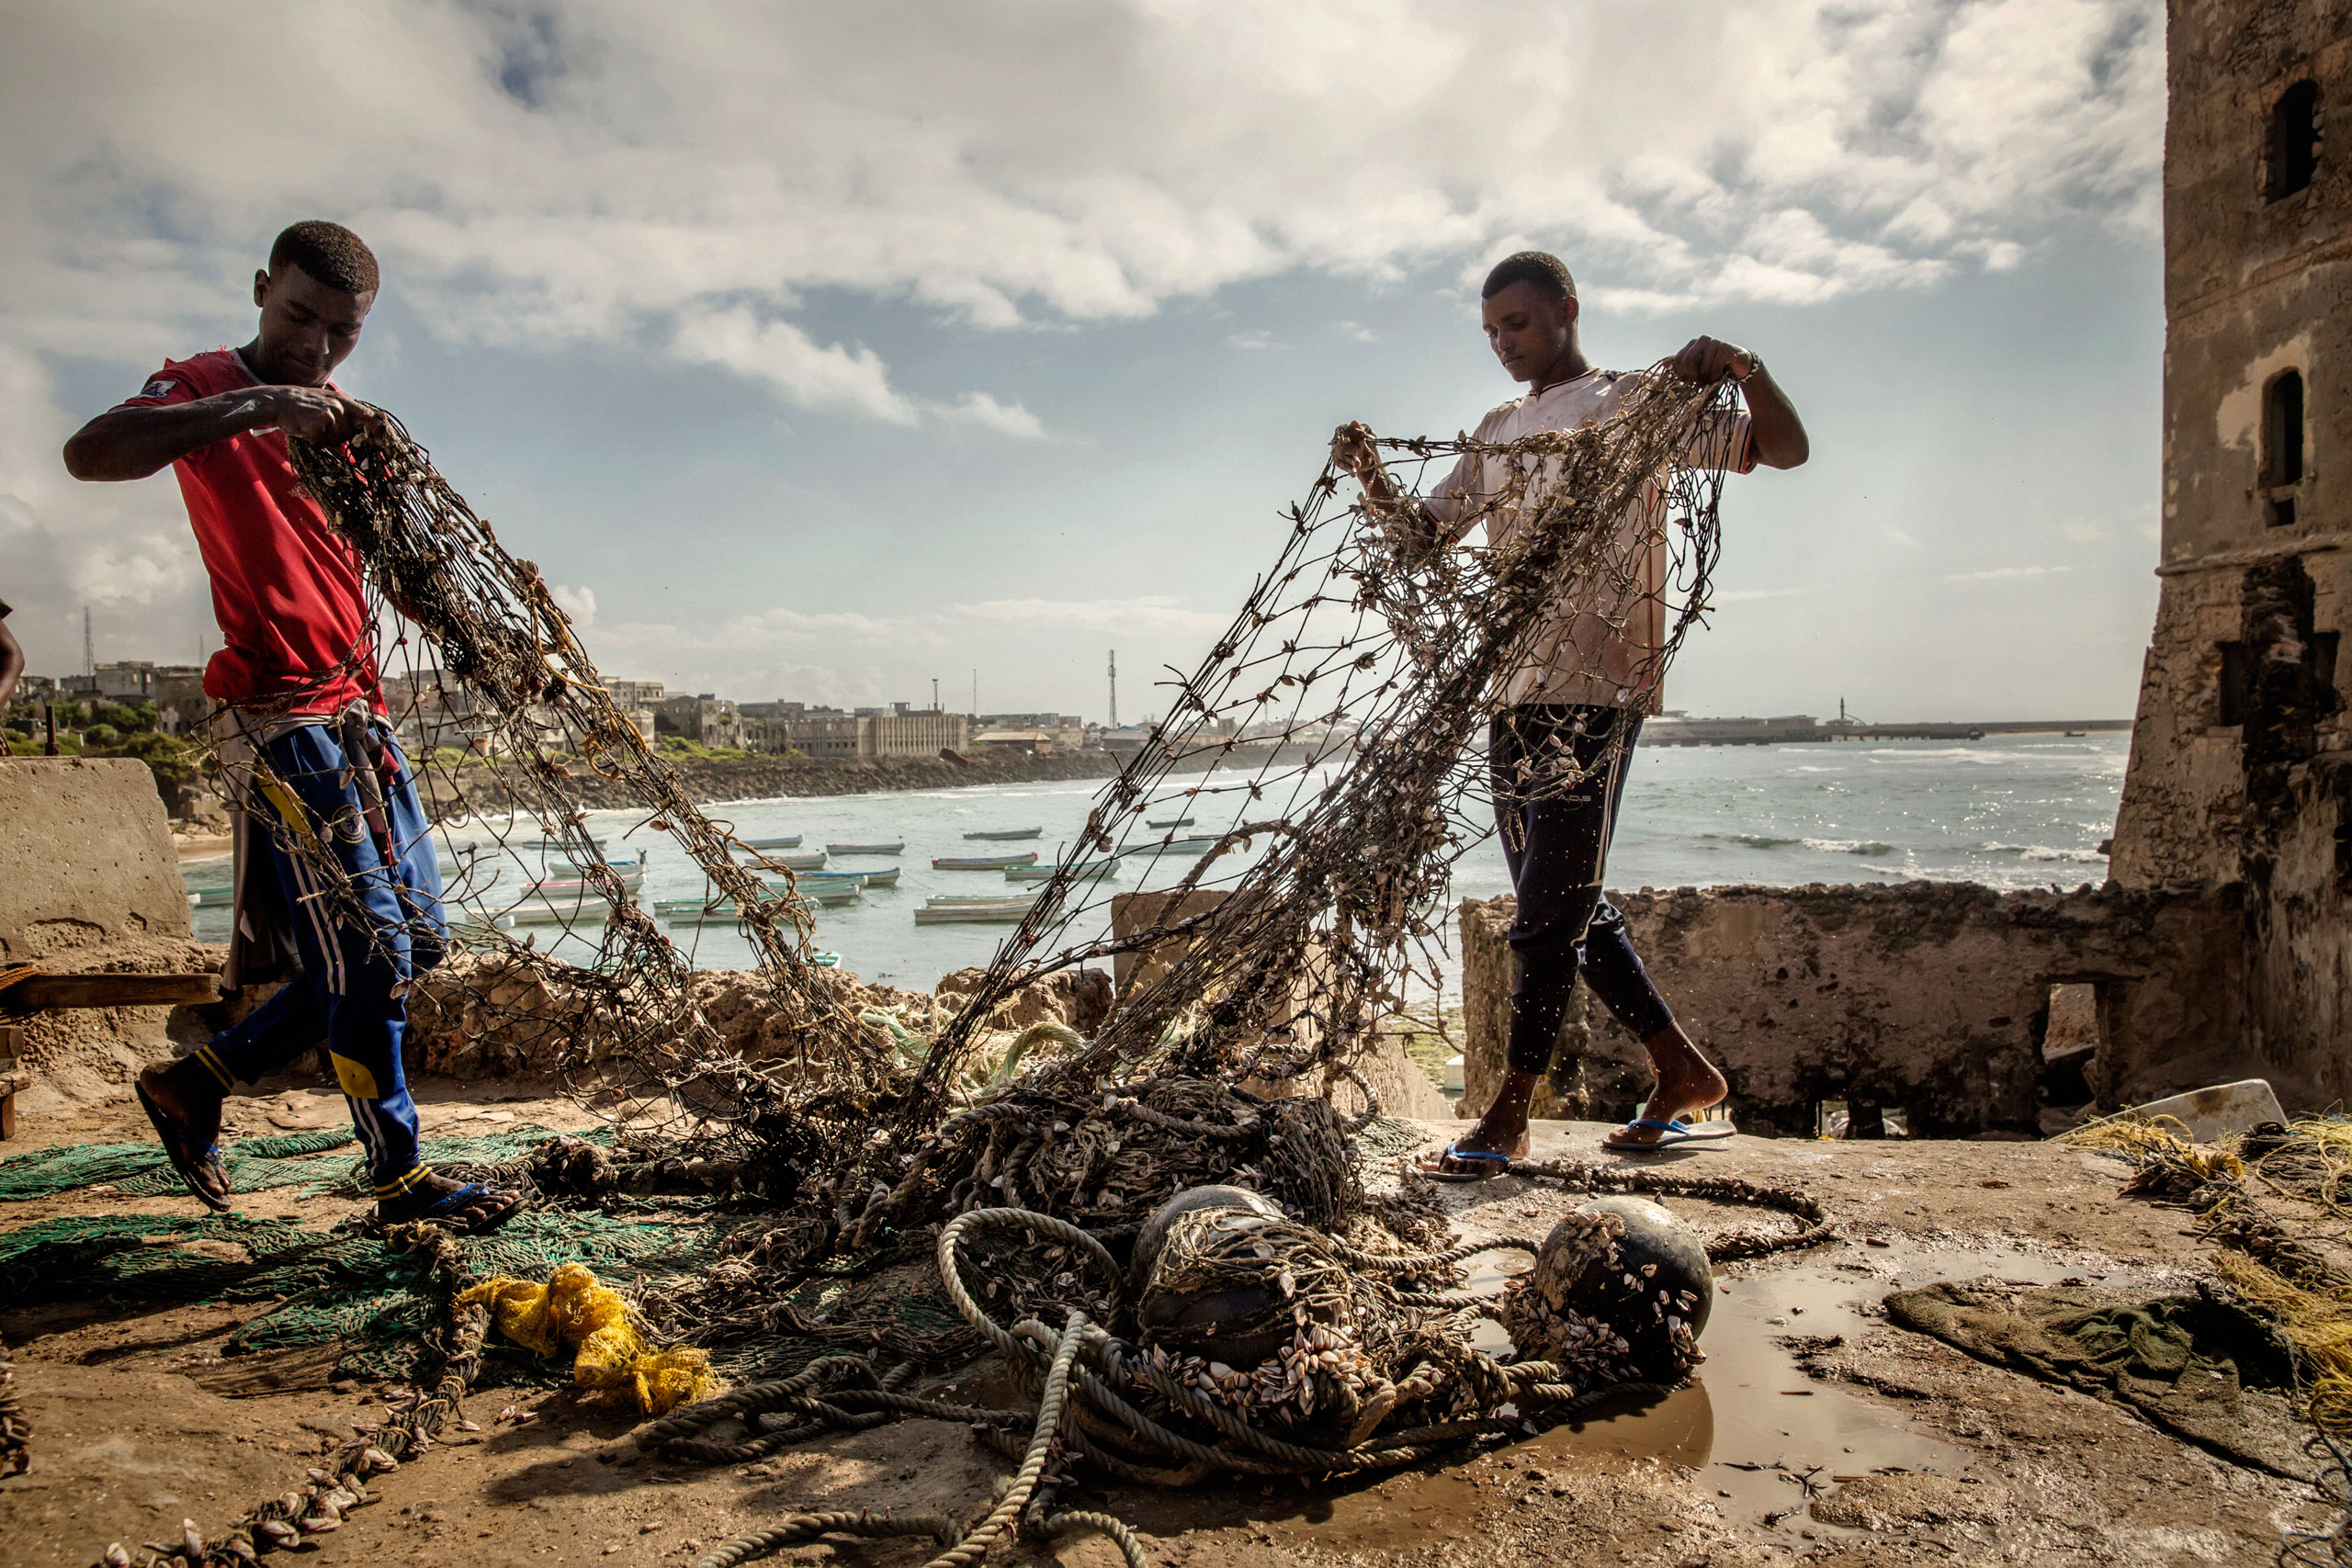 Two sailors repair sails and mend fishing nets. The country's waters have been exploited by illegal fisheries and the economic infrastructure that once provided jobs has been ravaged. Mogadishu, Somalia. October 10, 2015.